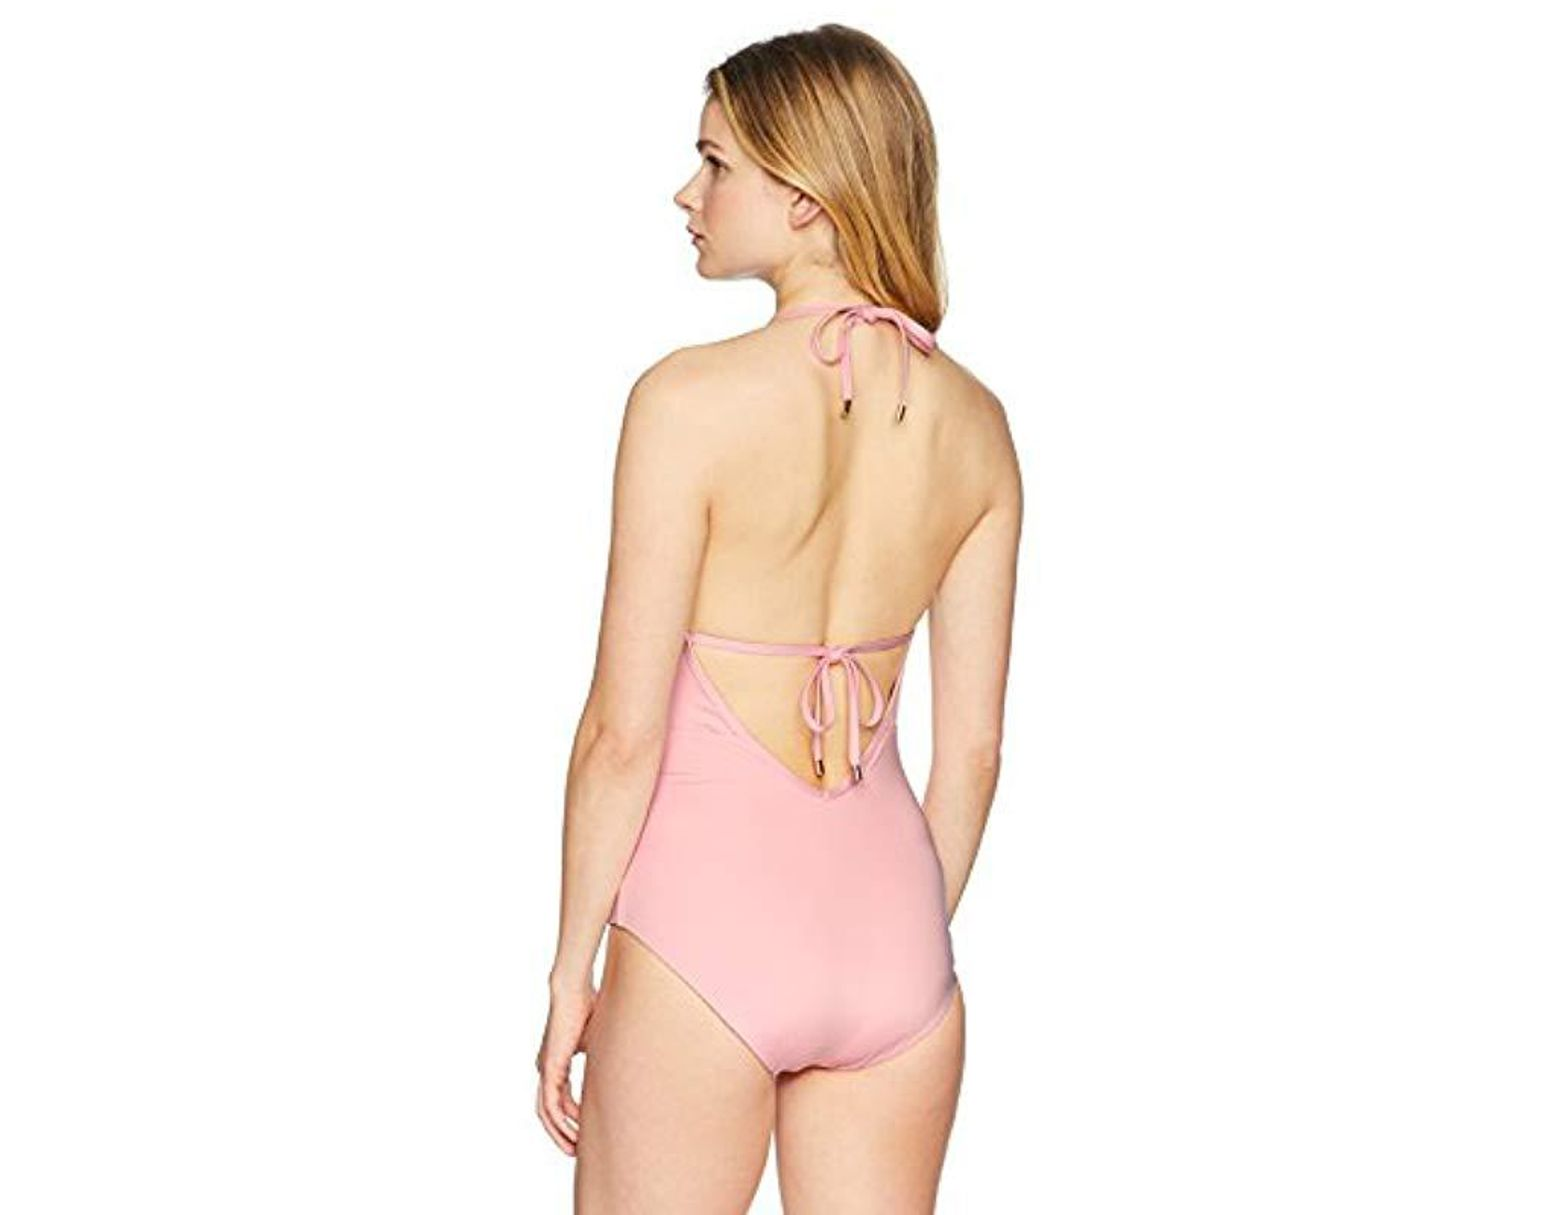 d7a091ef972d0 Laundry by Shelli Segal Scallop Lace Plunge One Piece Swimsuit in Pink -  Save 79% - Lyst